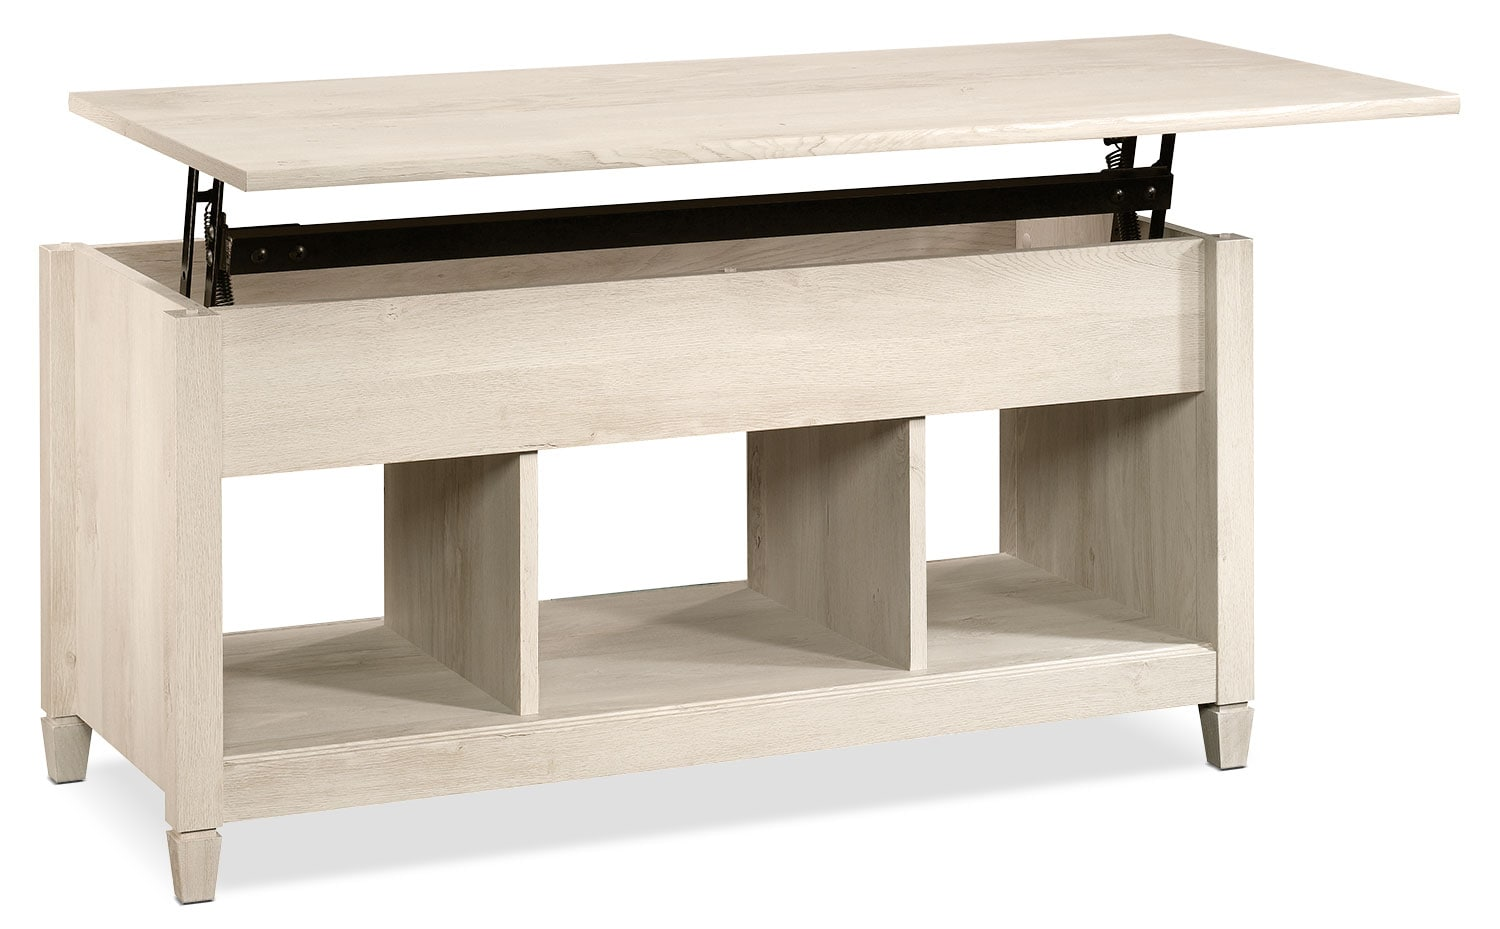 Edge Water Coffee Table with Lift Top – Chalked Chestnut